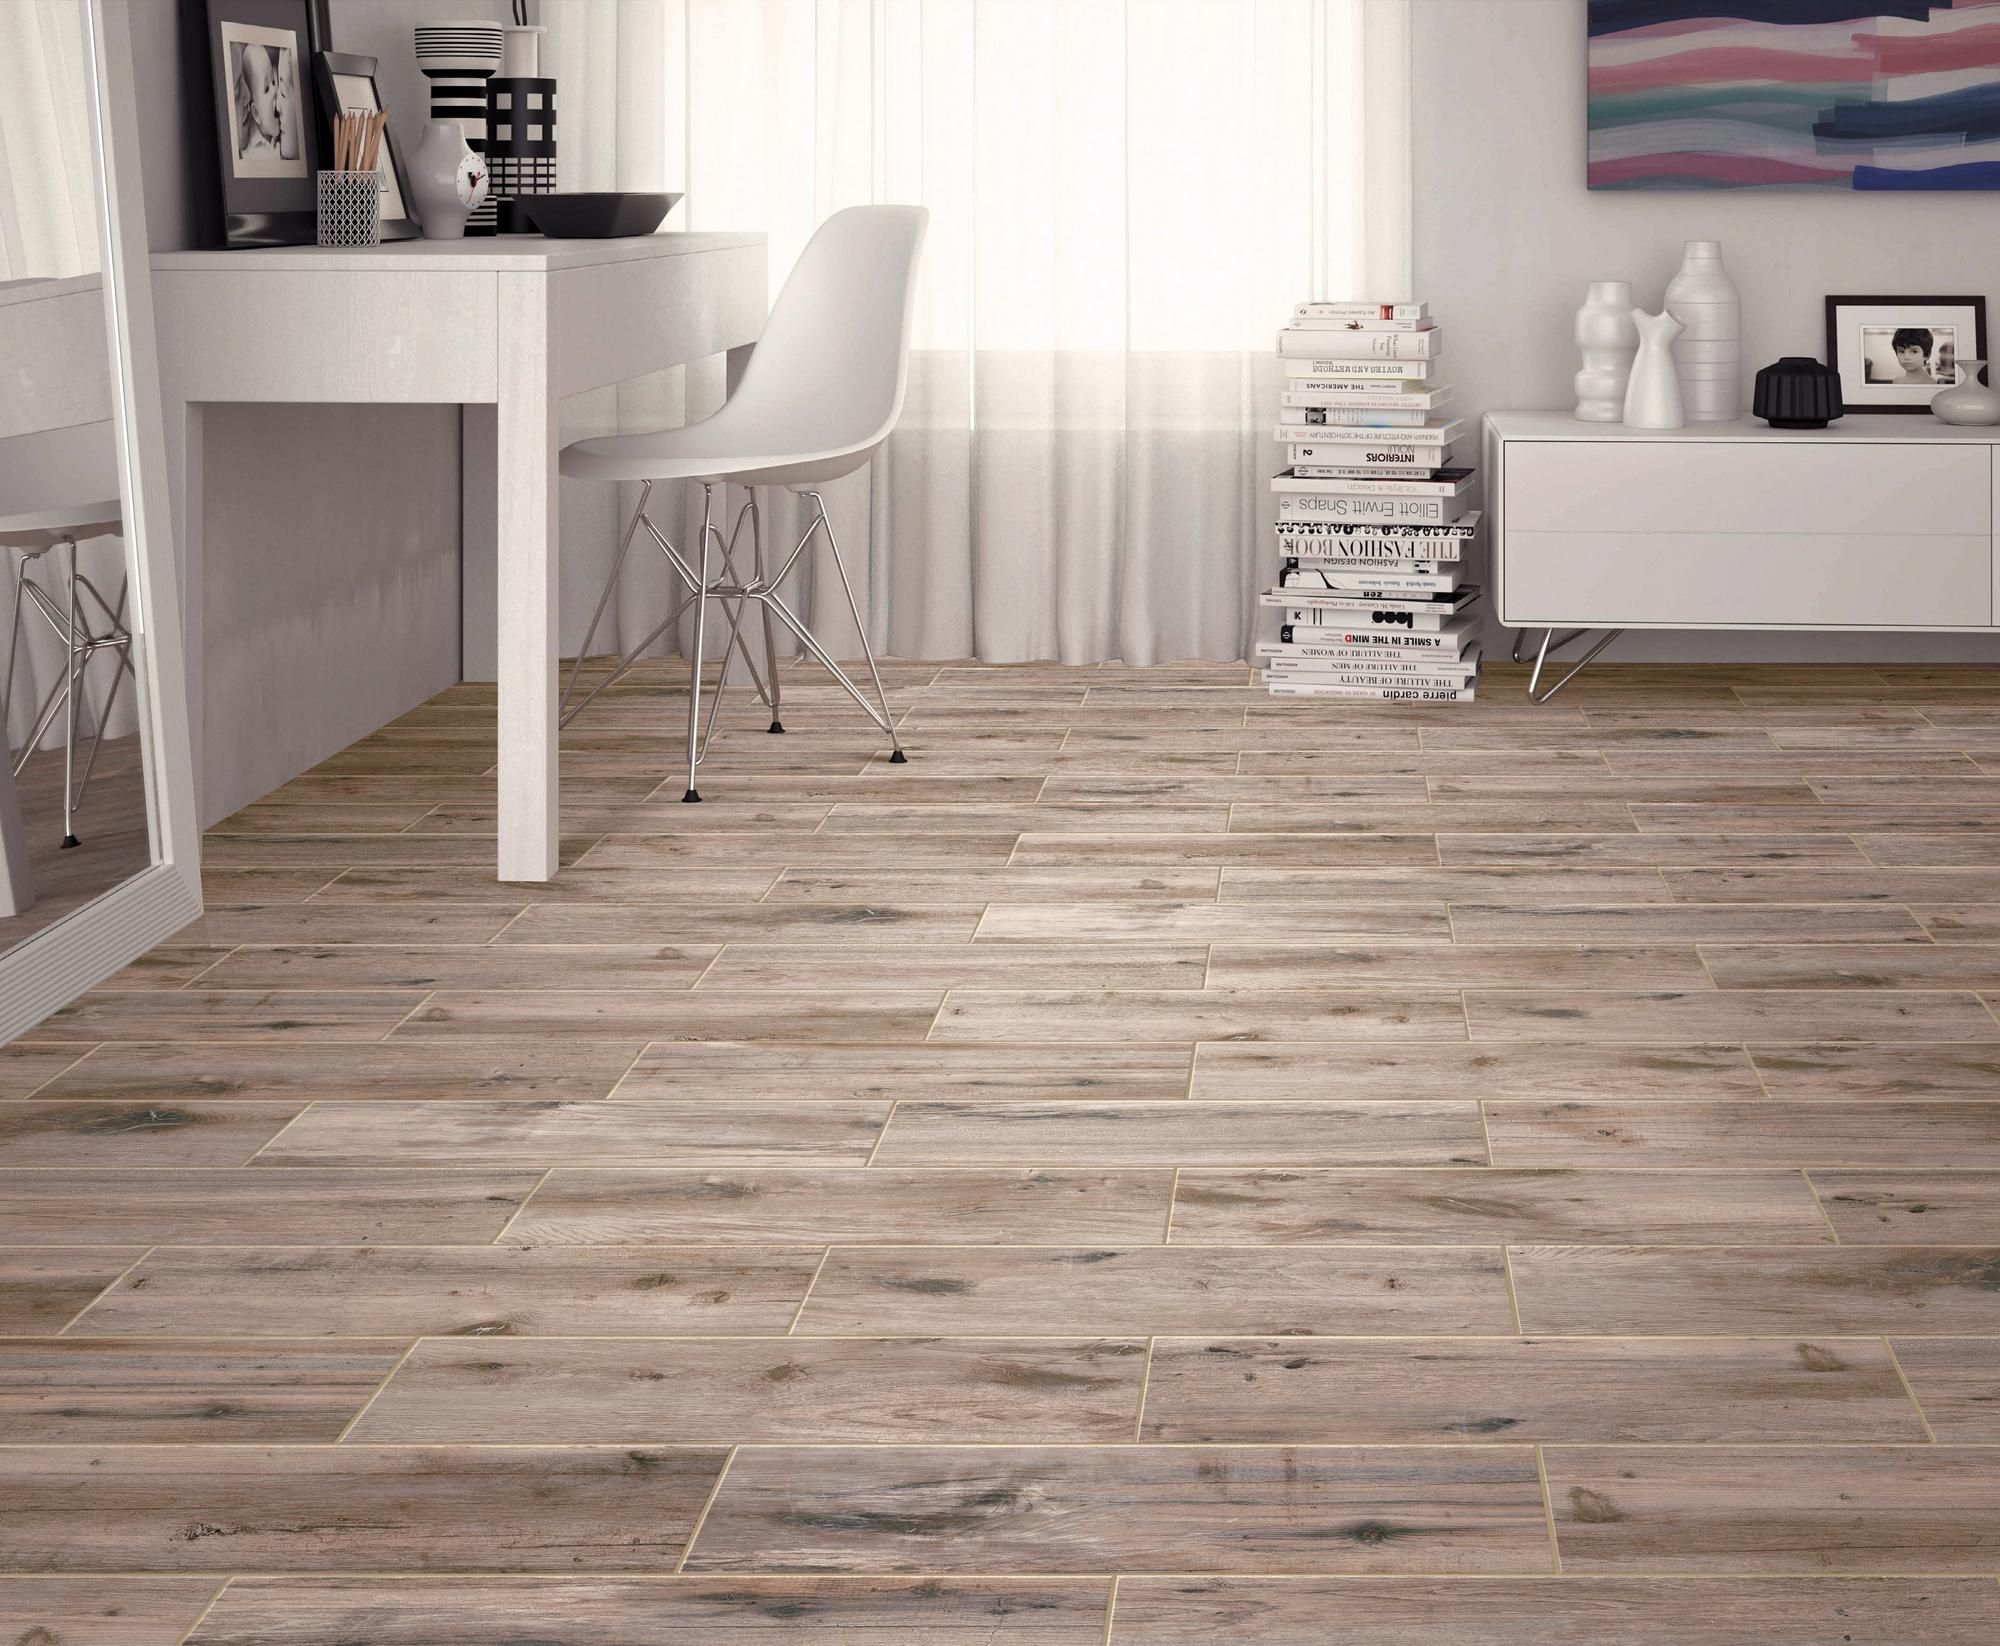 Mansfield Amber Wood Plank Porcelain Tile Floor Decor In 2020 Plank Tile Flooring Wood Floors Wide Plank House Flooring